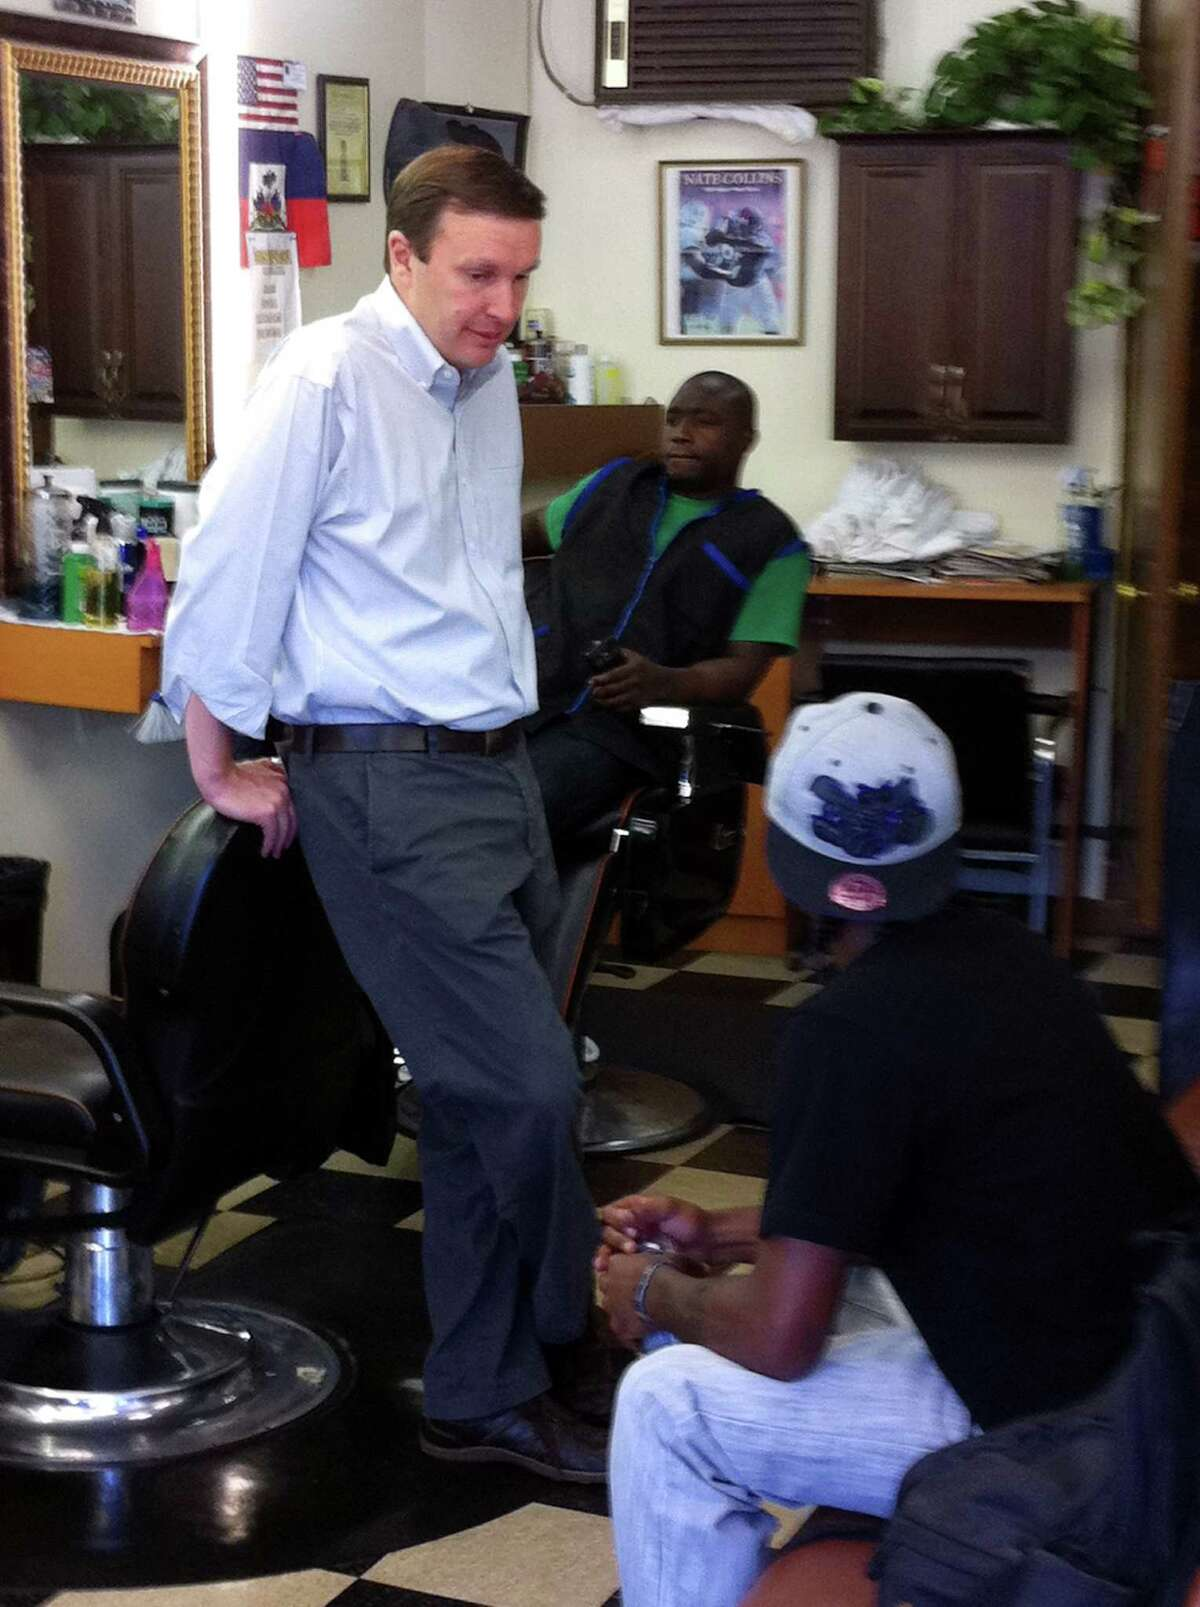 U.S. Rep. Christopher Murphy talks to Dayvon Kearney of Stamford, a student at Total Image Beauty and Barber in Stamford, Conn. as part of a campaign jobs tour on Monday June 18, 2012. Murphy is the endorsed Democratic candidate for U.S. Senate. He faces an August primary against Susan Bysiewicz.